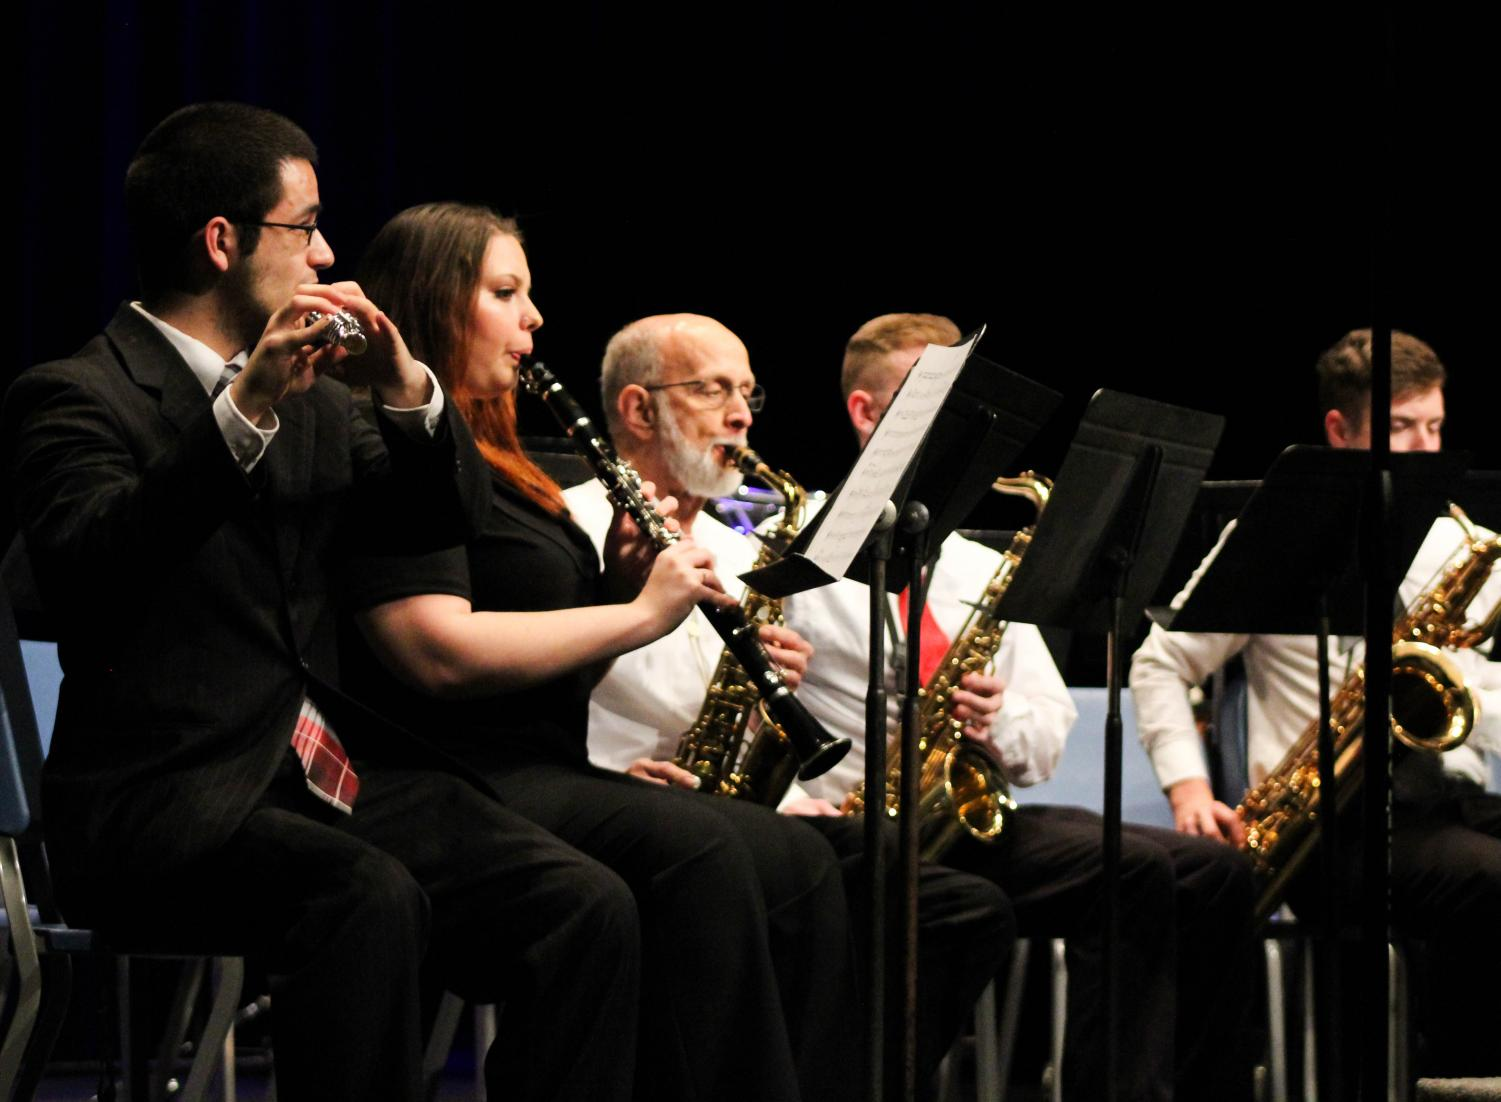 The+Allen+Concert+Band+was+among+one+of+the+first+ensembles+to+perform.